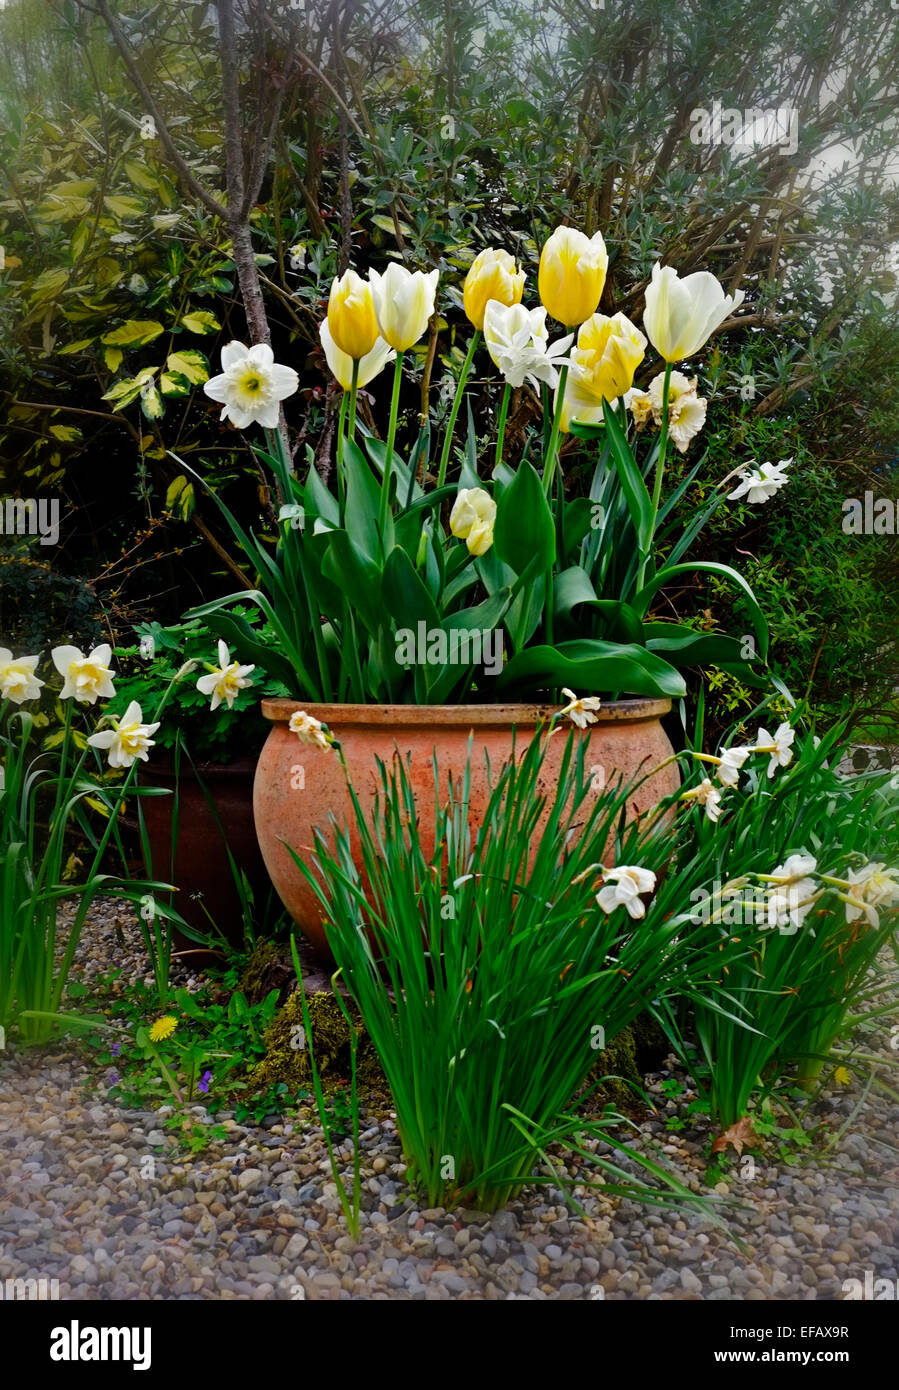 Large Pot With Yellow And White Tulips And Narcissus Flowers In A